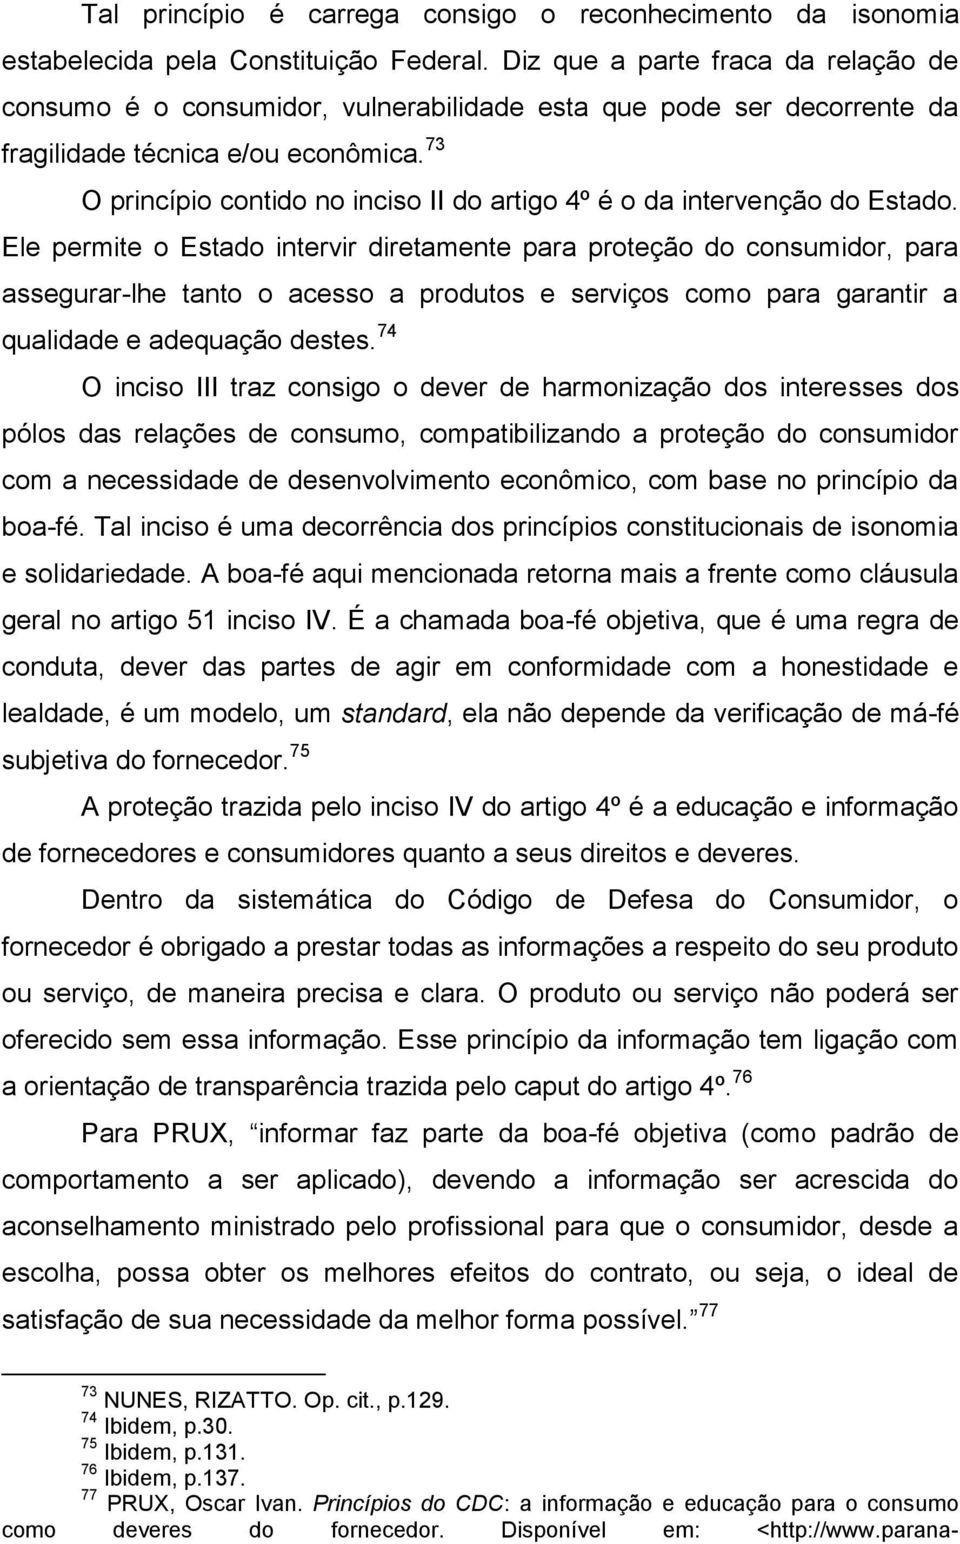 73 O princípio contido no inciso II do artigo 4º é o da intervenção do Estado.